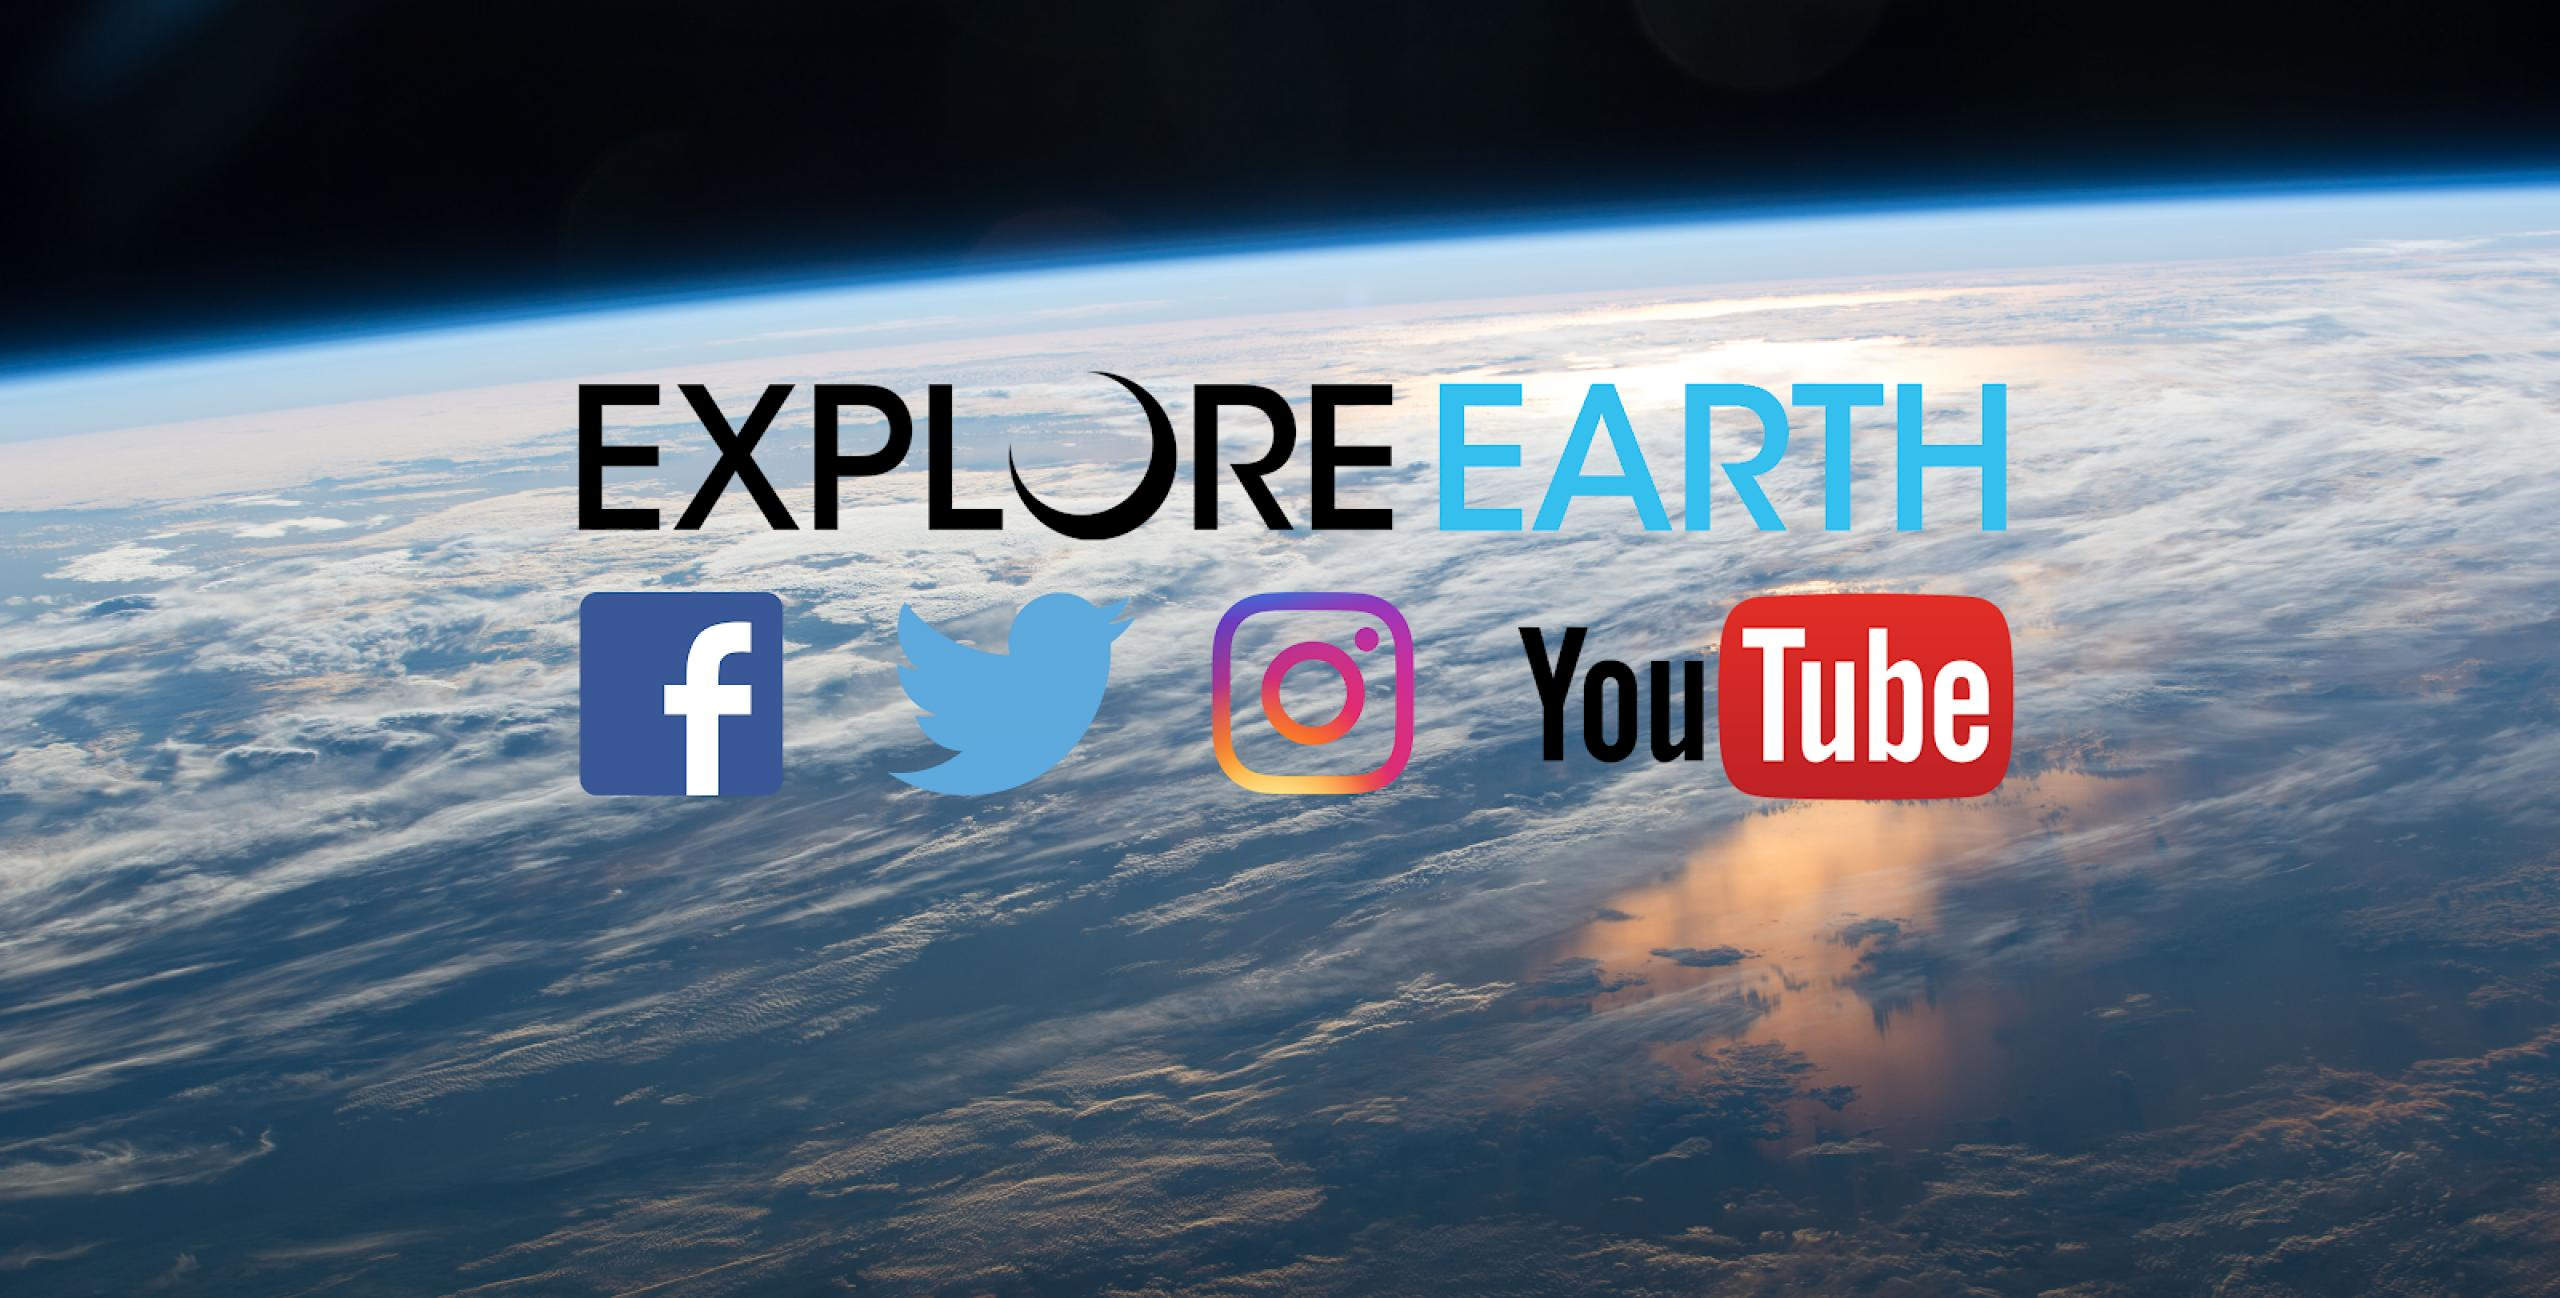 Social media icons overlaying an image of the earth